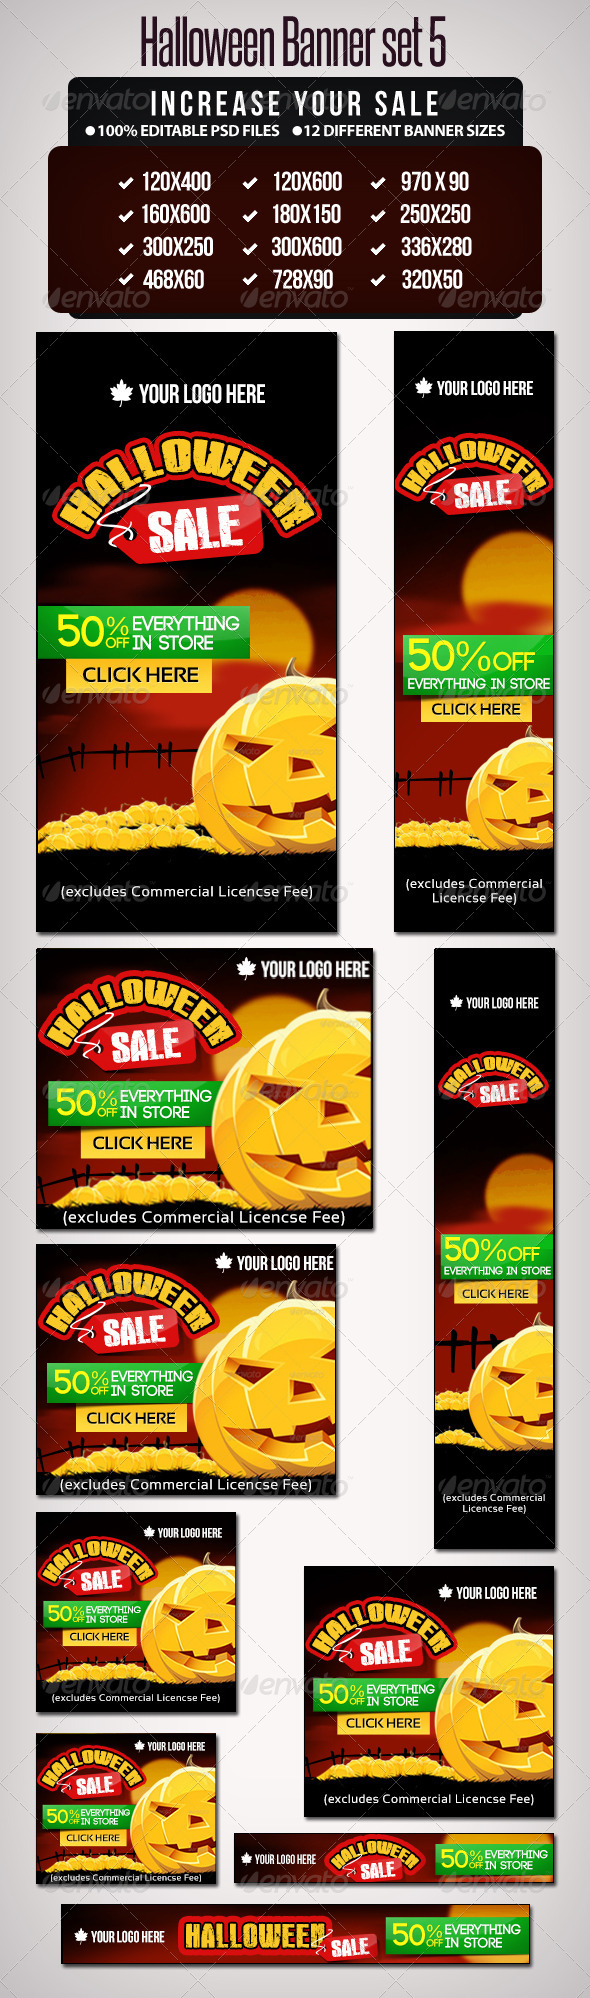 GraphicRiver Halloween Banner Set 5 12 Google Size Banners 5729319